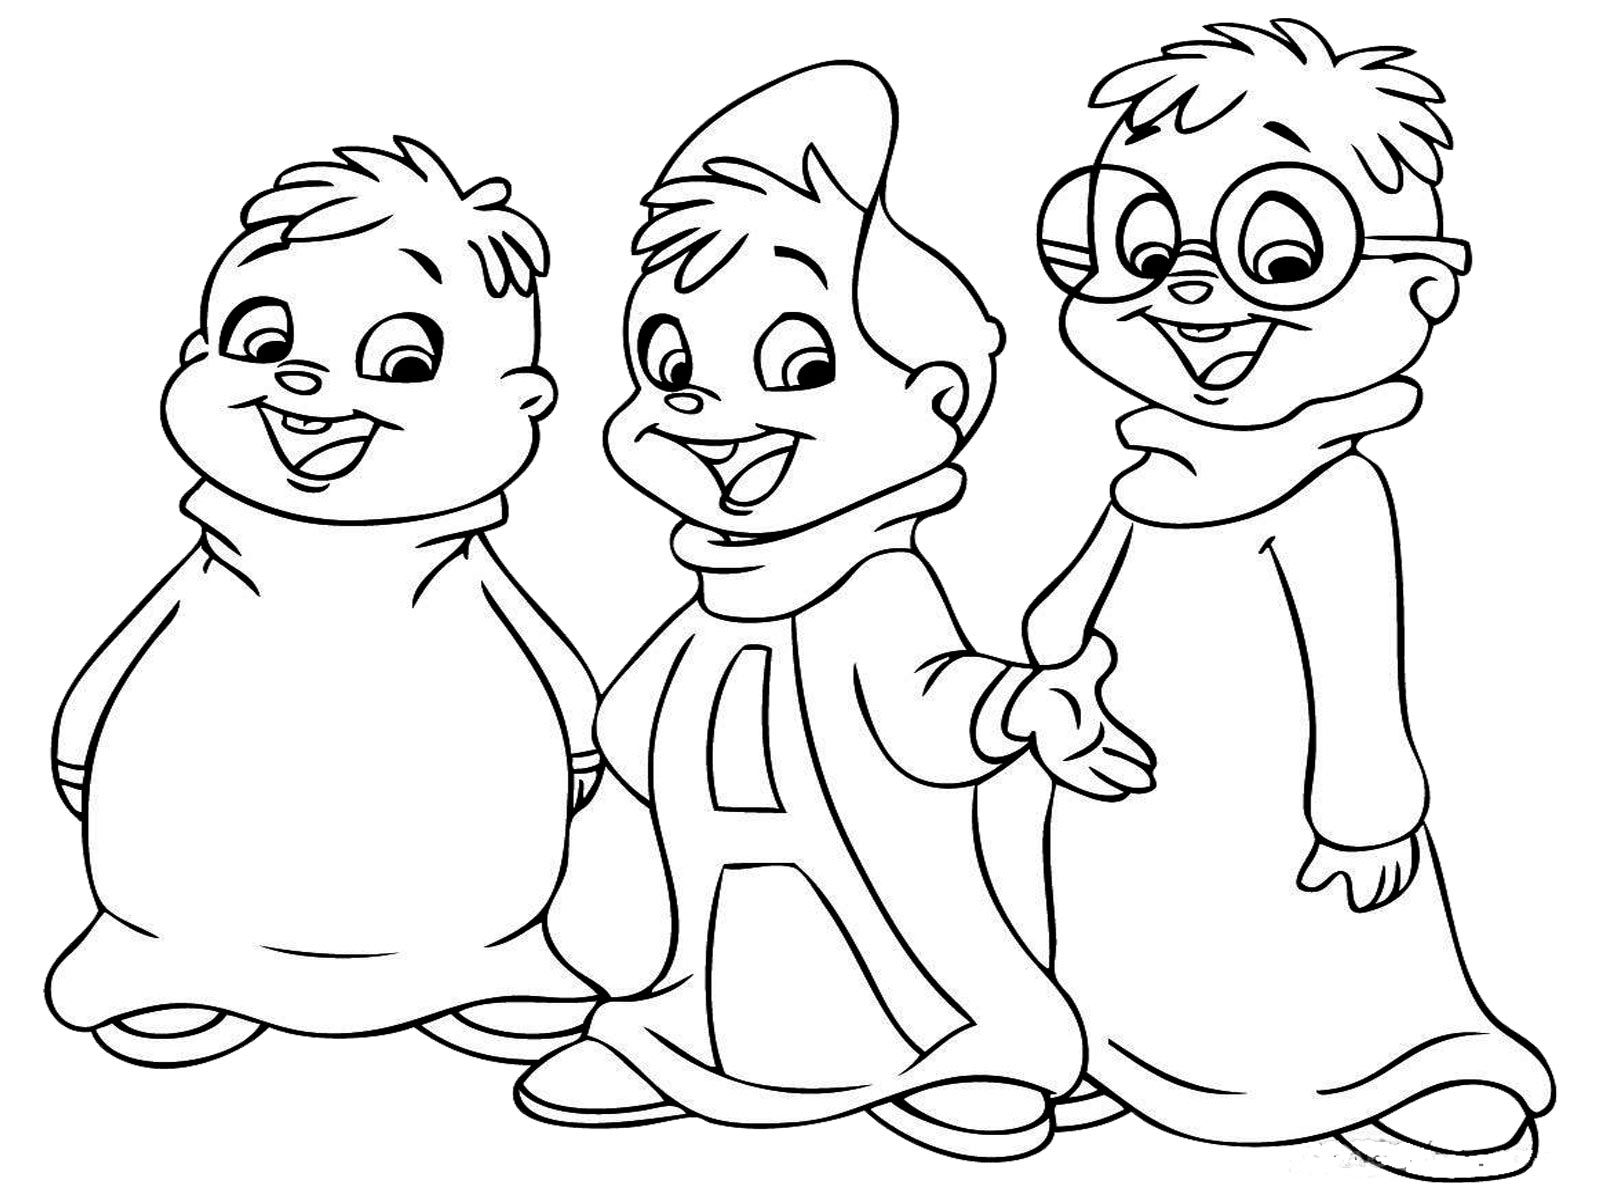 printable coloring pages for boys alvin and the chipmunks coloring pages realistic coloring pages - Coloring Pages For Kids Printable